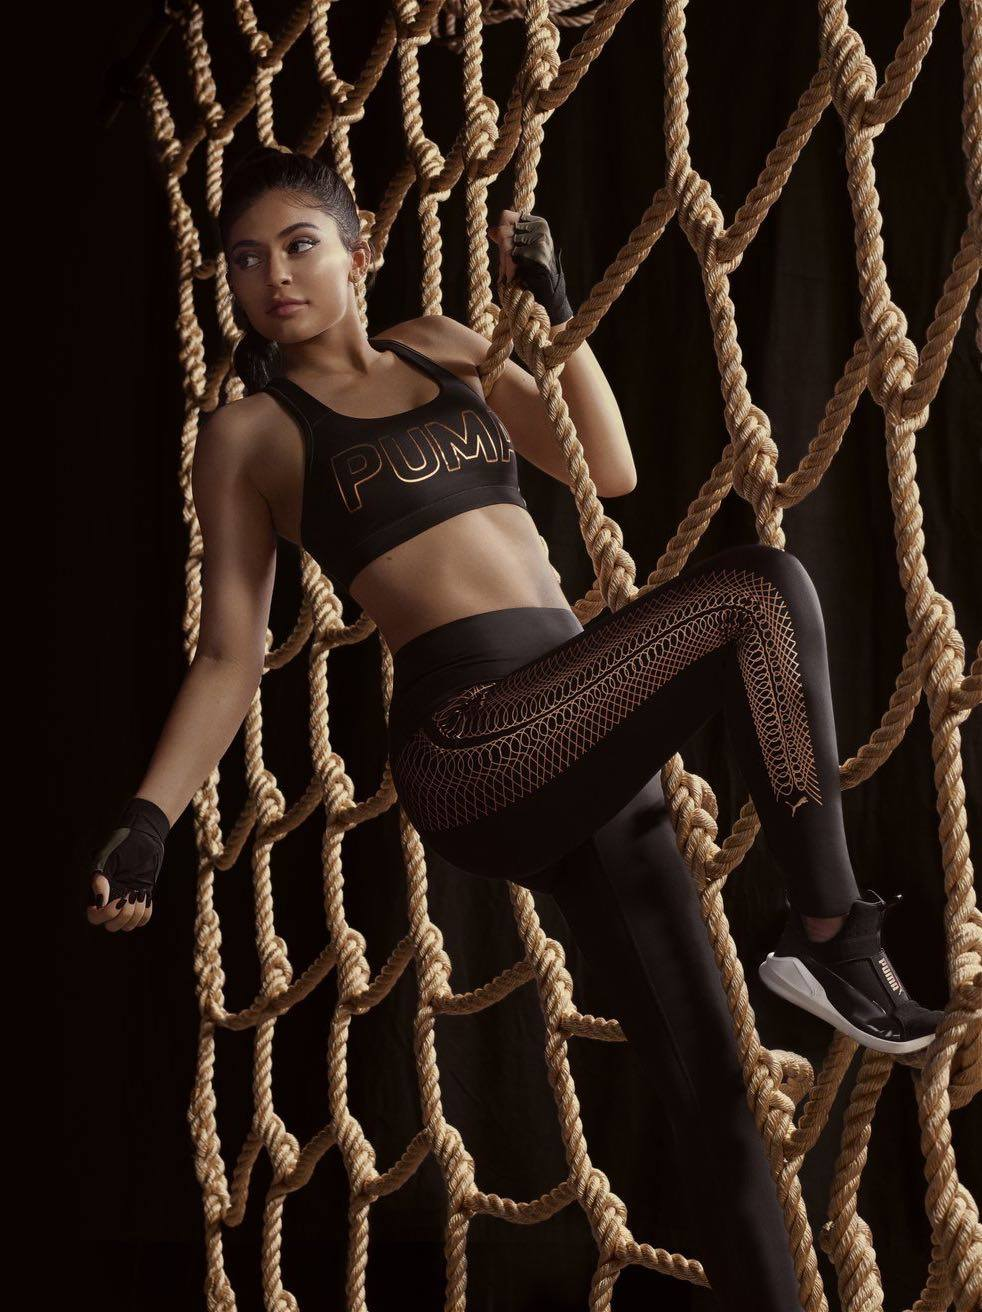 Puma - 'Velvet Rope' Collection ambassador Kylie Jenner